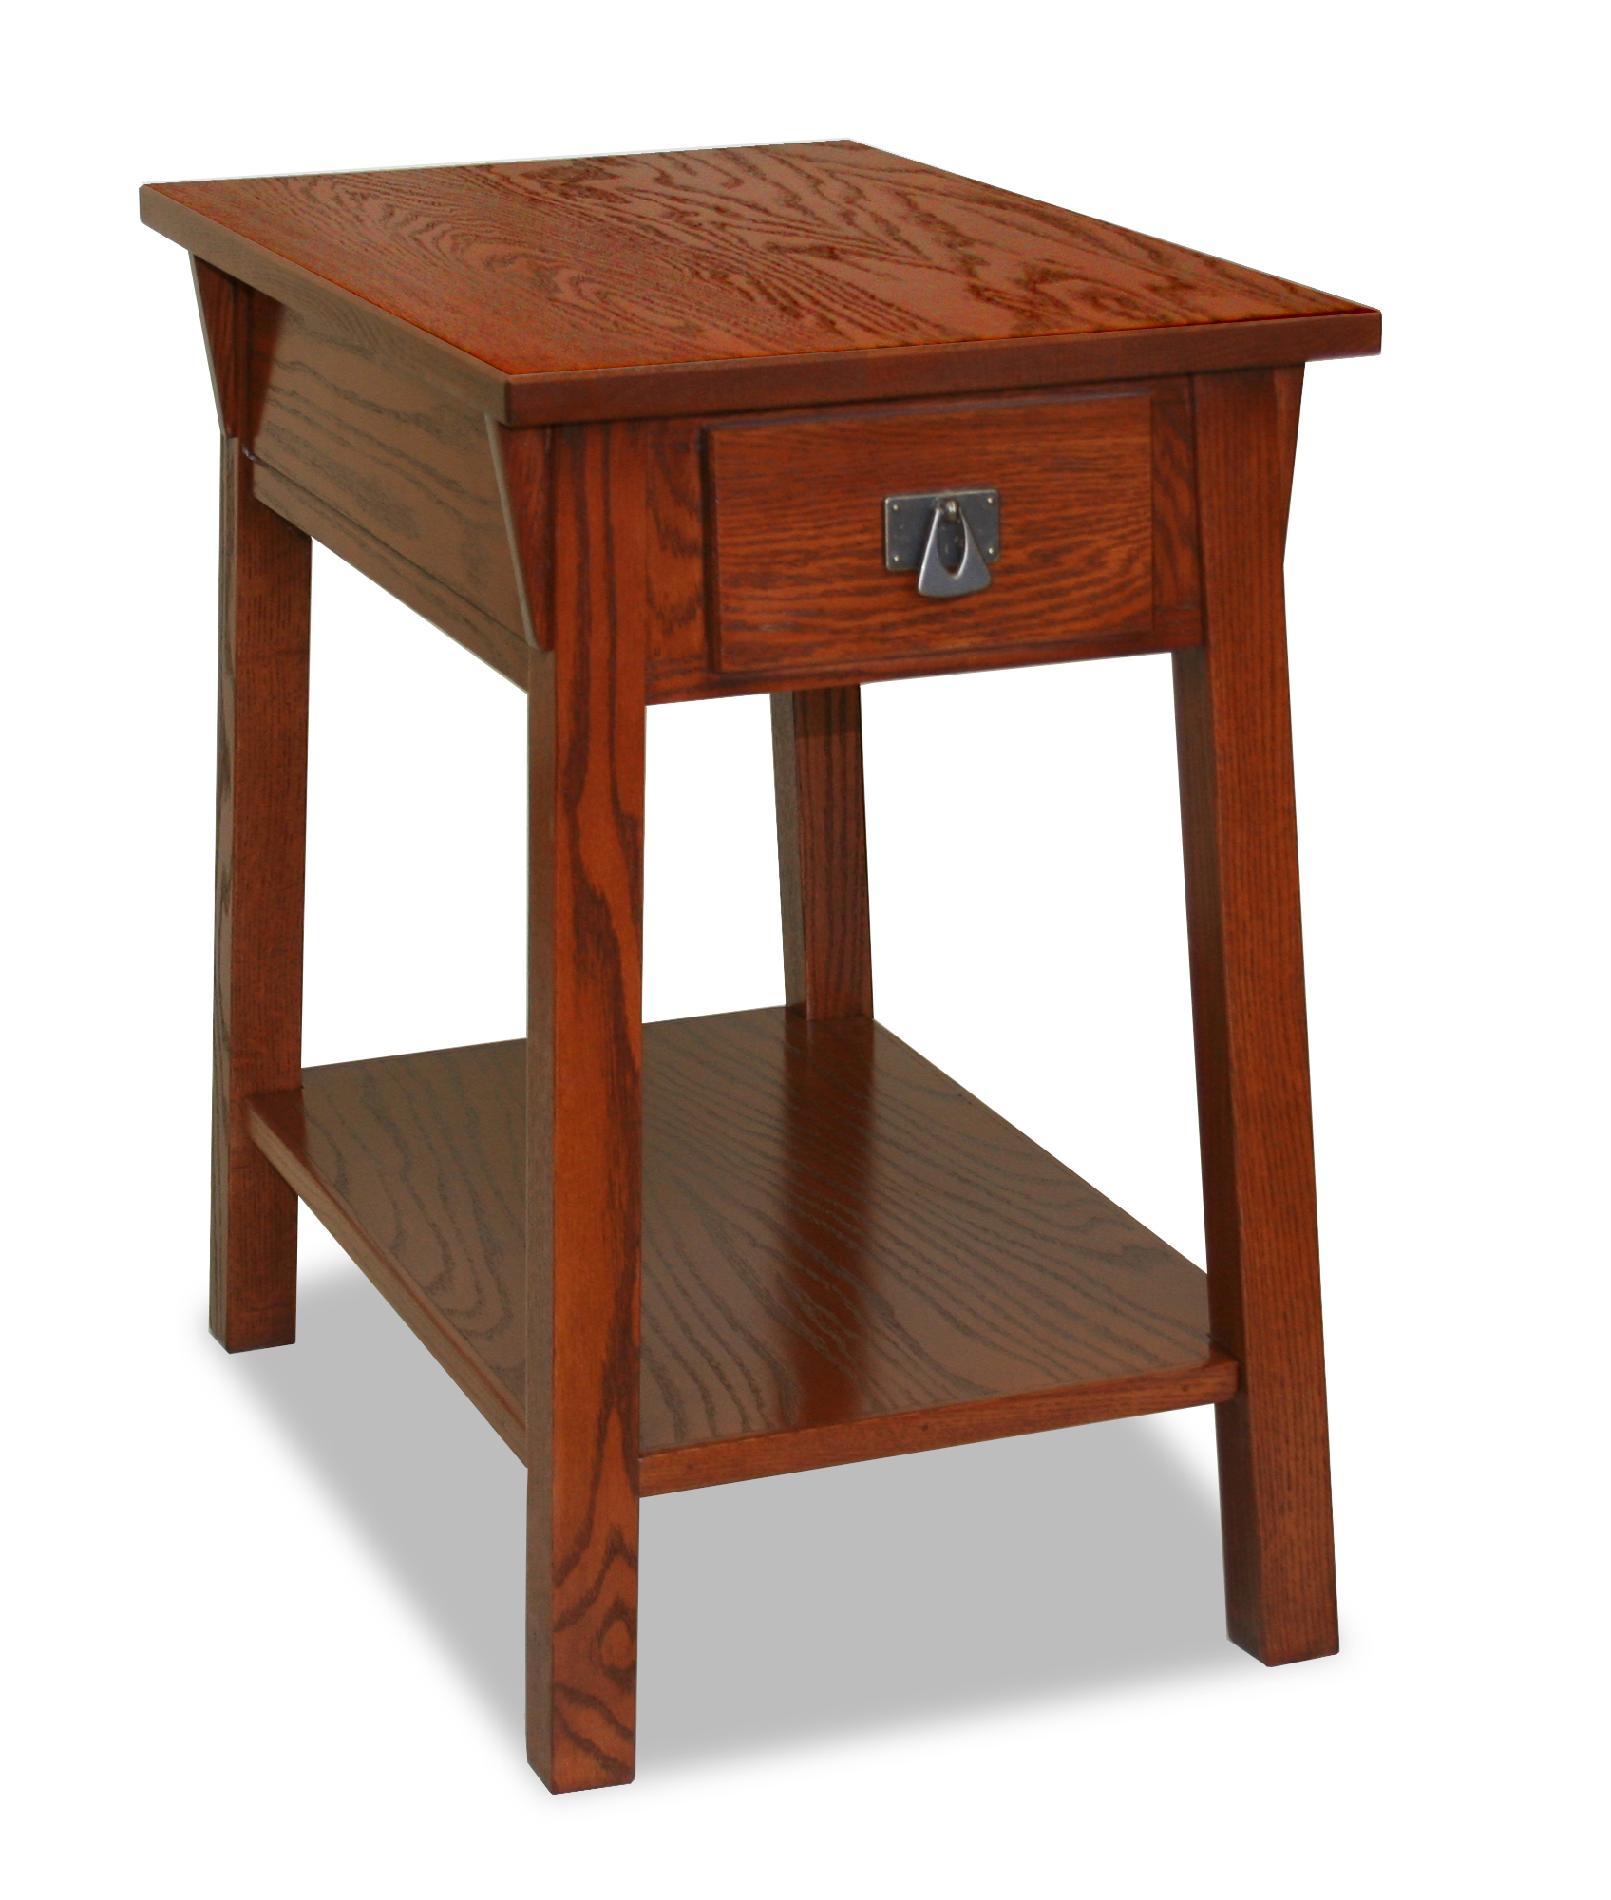 chair side end table indoor swing for bedroom leick bin pull narrow chairside candleglow